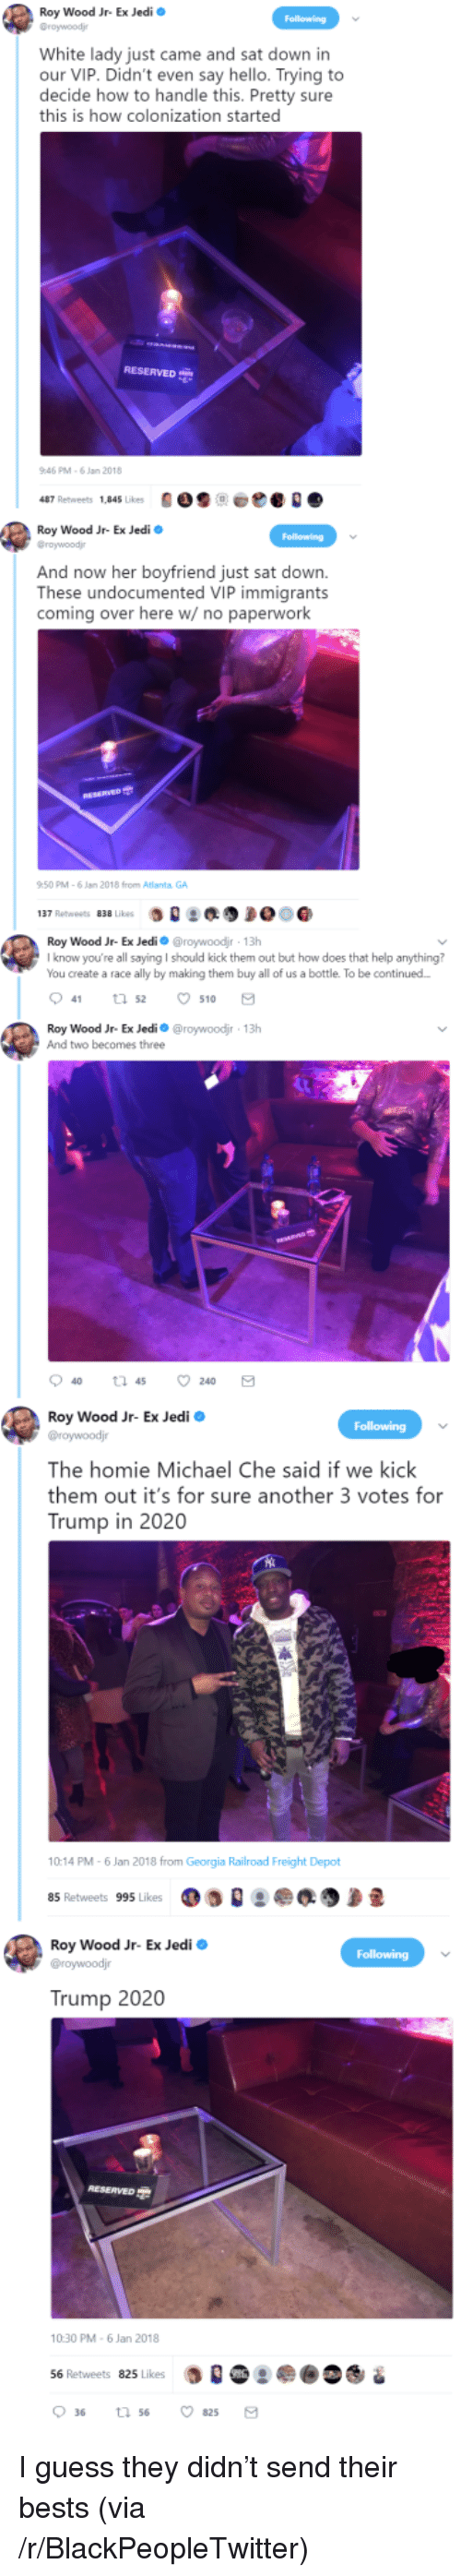 to be continued: Roy Wood Jr- Ex Jedi  Graywoodj  White lady just came and sat down in  our VIP. Didn't even say hello. Trying to  decide how to handle this. Pretty sure  this is how colonization started  RESERVED  46 PM-6 Jan 2018  487 Retweets 1,845 Likes900e  Roy Wood Jr- Ex Jedi  Groywoodj  And now her boyfriend just sat down.  These undocumented VIP immigrants  coming over here w/ no paperwork  50 PM-6 Jan 2018 from Atlanta GA  :缑  137 Retweets 838 Likes  Roy Wood Jr-Ex Jedi Ф @roywoodir , 13h  I know you're all saying I should kick them out but how does that help anything?  You create a race ally by making them buy all of us a bottle. To be continued  041 52 ㅇ510  Roy Wood Jr- Ex Jedio @roywoodjr 13h  And two becomes three  Roy Wood Jr- Ex Jedi o  The homie Michael Che said if we kick  them out it's for sure another 3 votes for  Trump in 2020  10:14 PM-6 Jan 2018 from Georgia Railroad Freight Depot  85 Retweets 995 Likes  Roy Wood Jr- Ex Jedi  Trump 2020  10:30 PM-6 Jan 2018  56 Retweets 825 Likes  0 36 <p>I guess they didn&rsquo;t send their bests (via /r/BlackPeopleTwitter)</p>